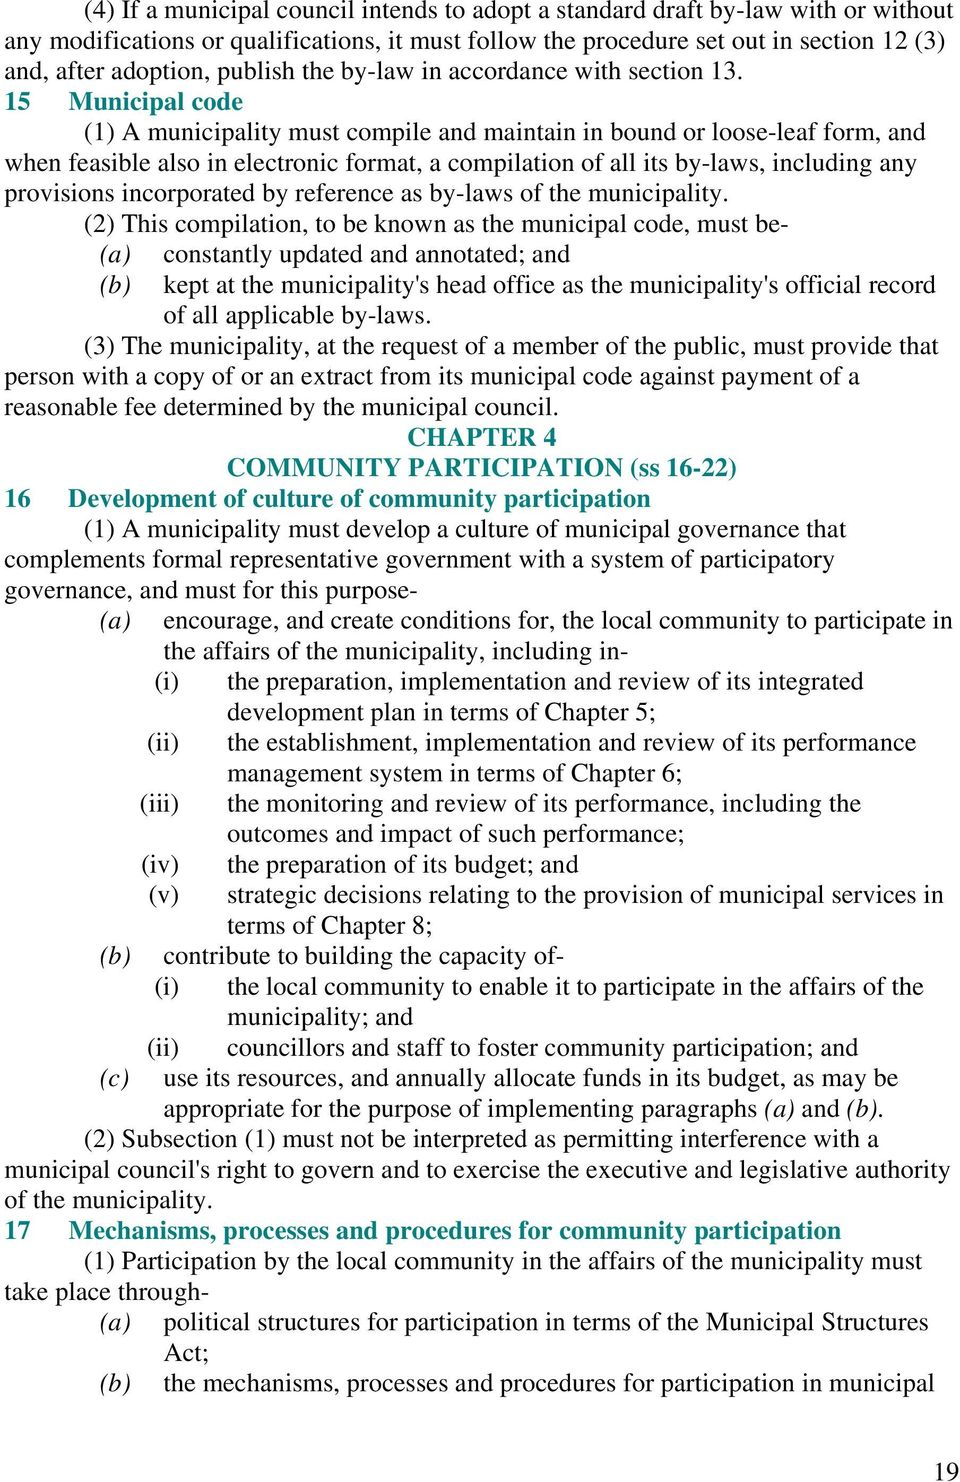 15 Municipal code (1) A municipality must compile and maintain in bound or loose-leaf form, and when feasible also in electronic format, a compilation of all its by-laws, including any provisions